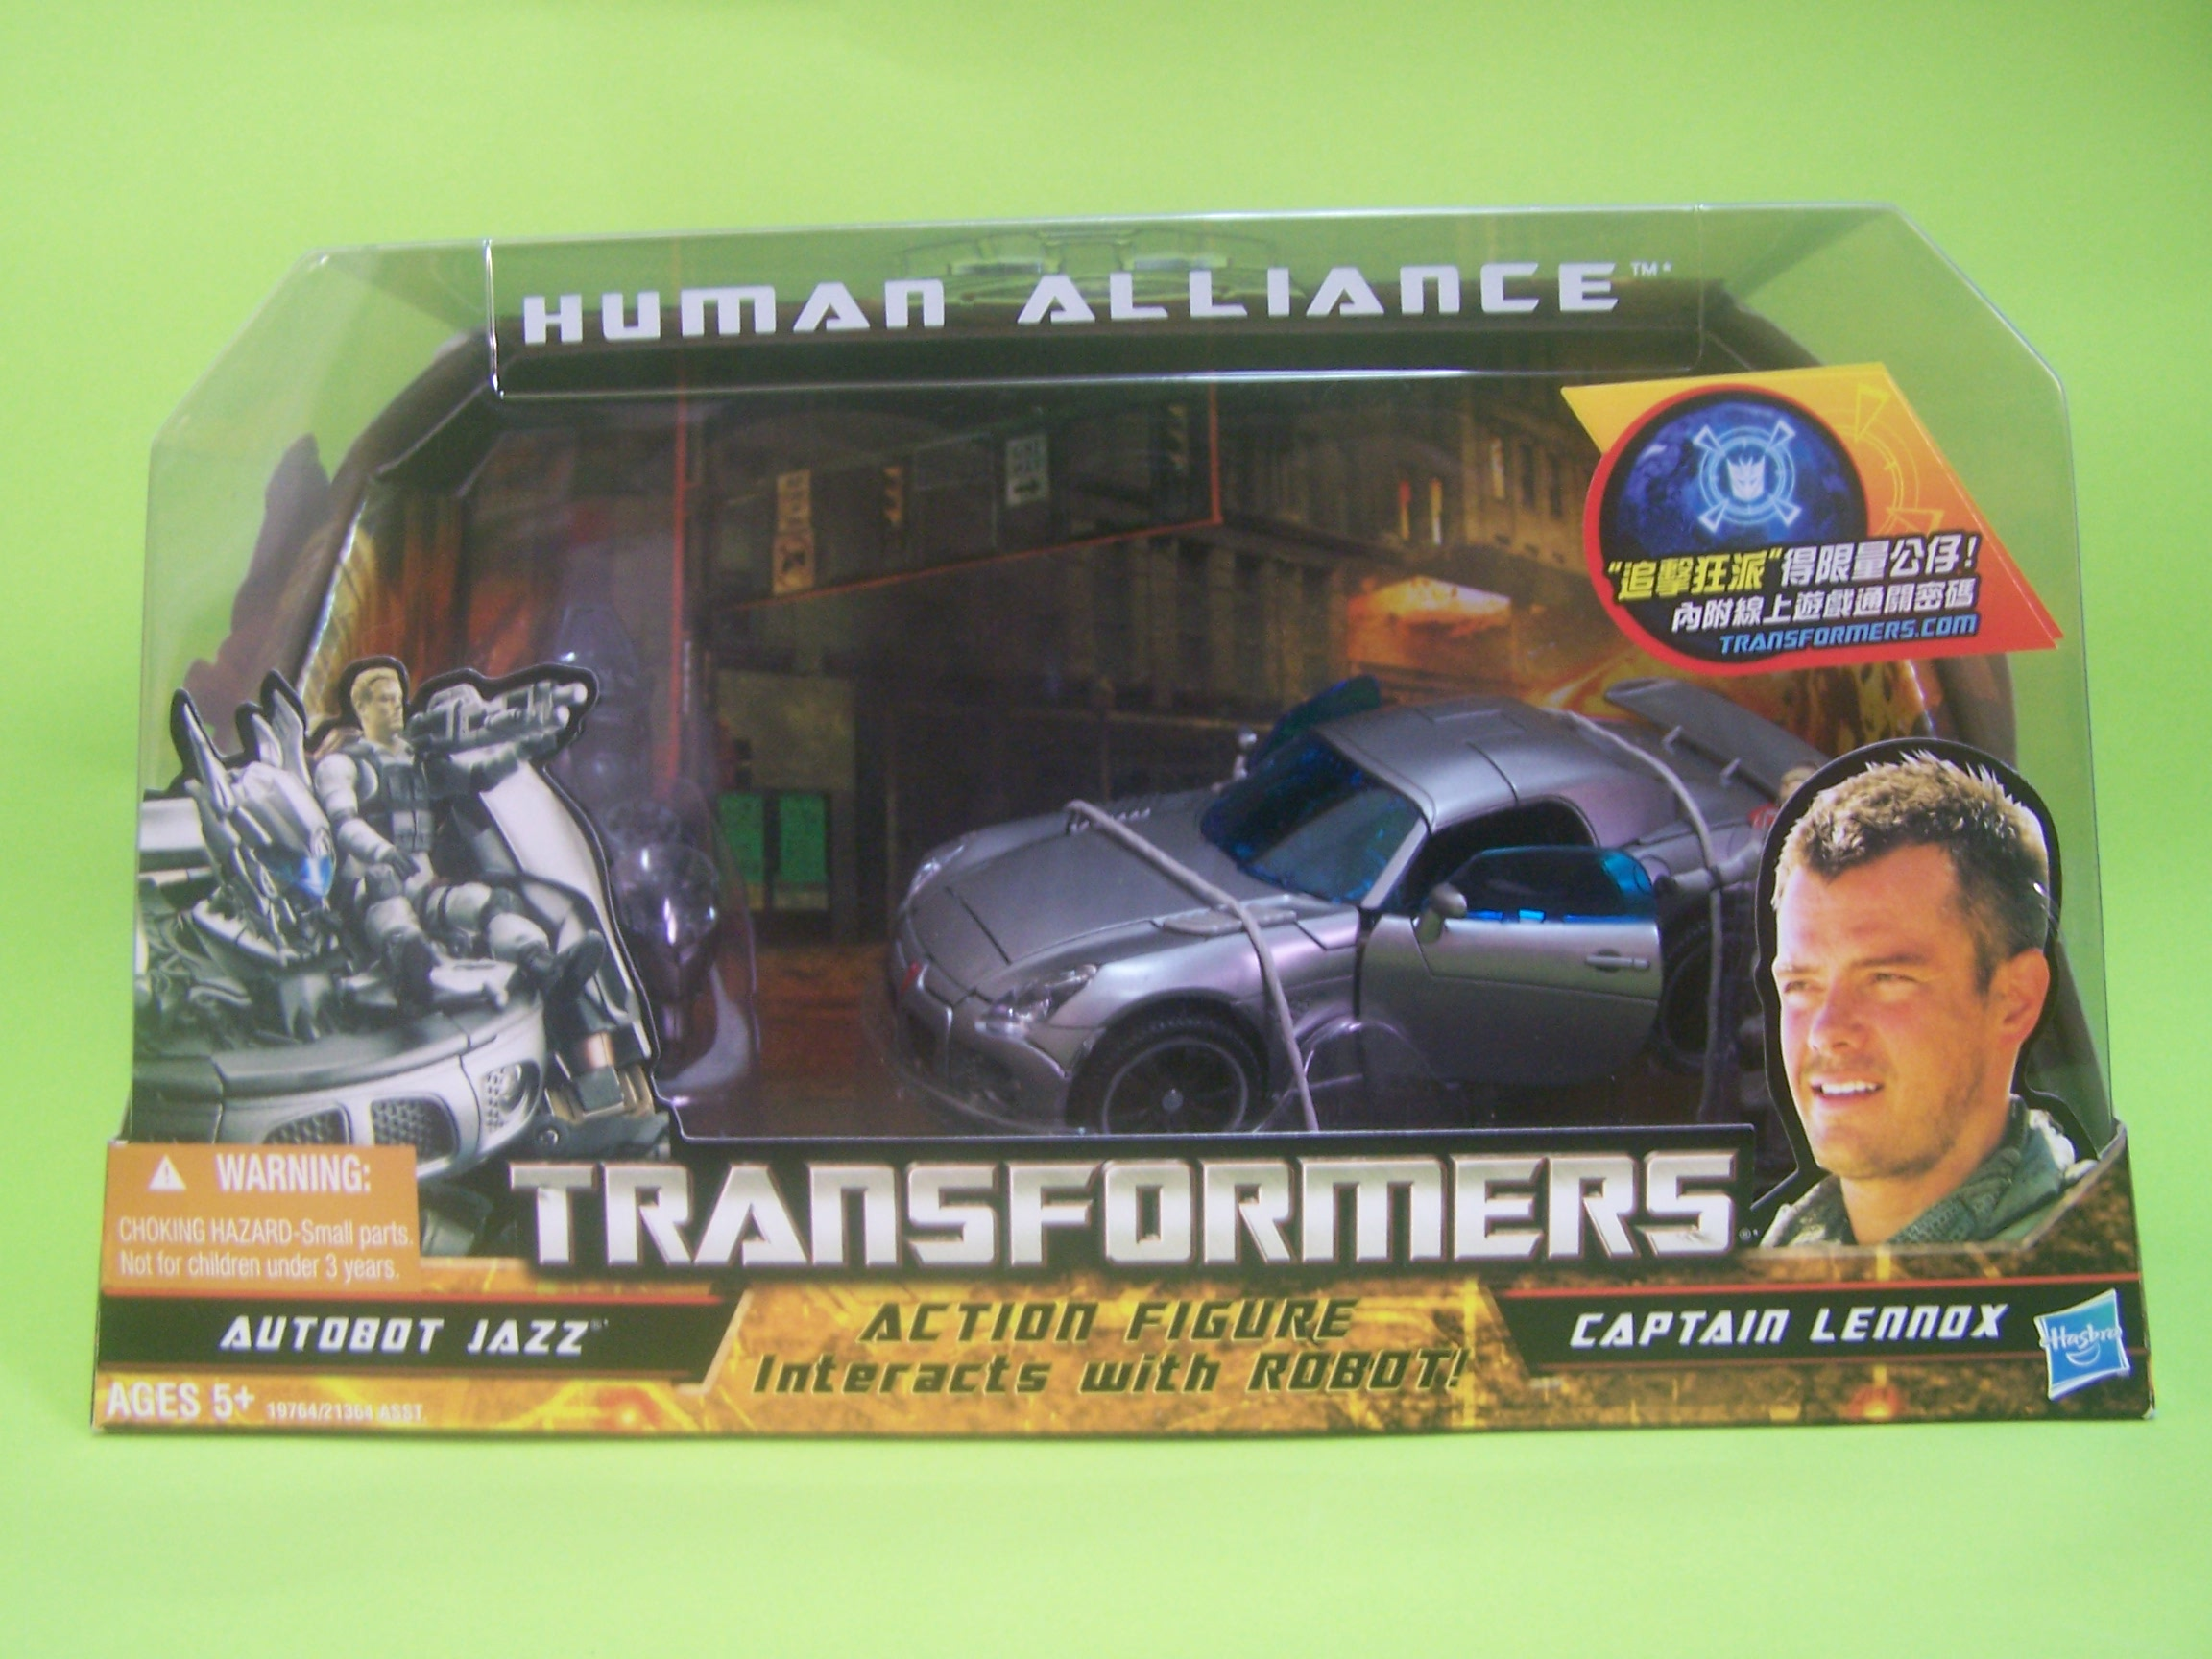 Human Alliance Autobot Jazz with Captain Lennox-106.jpg